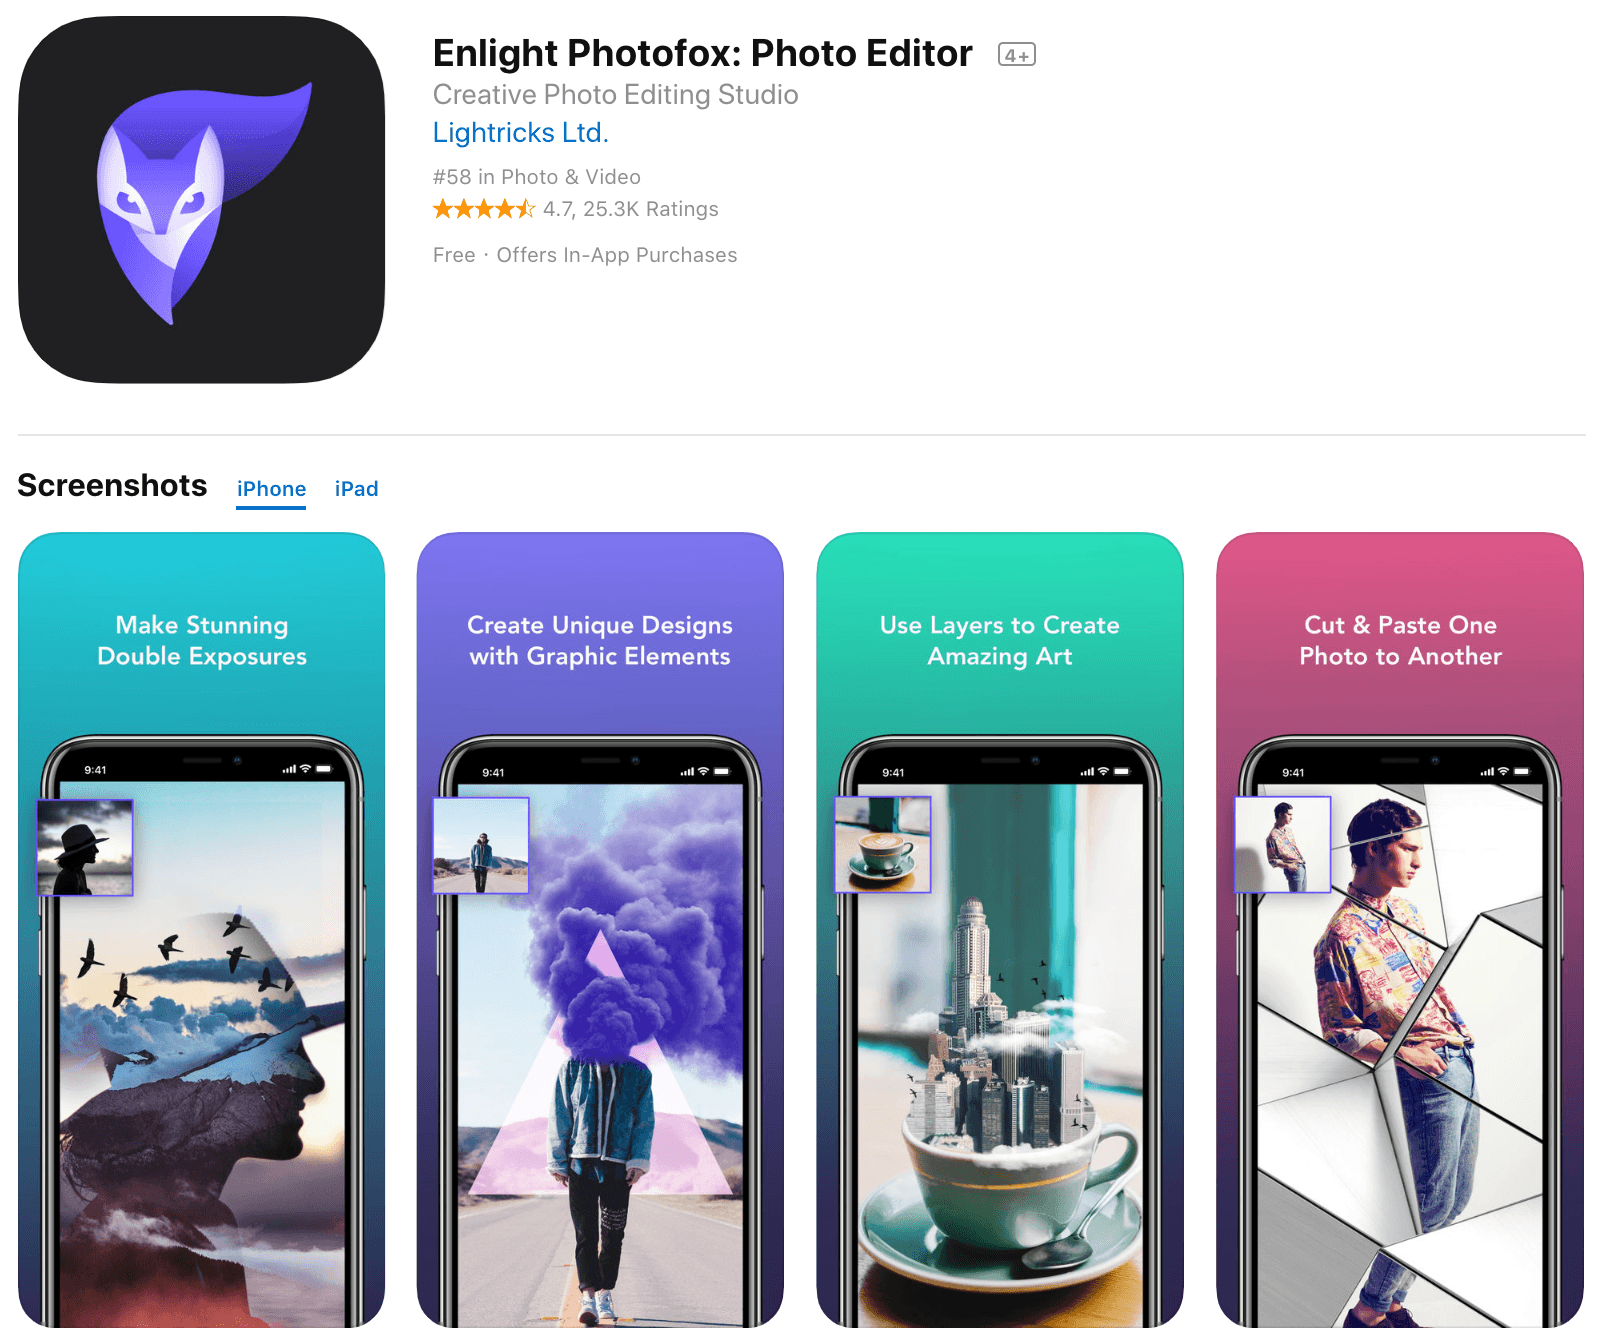 Enlight Photofox